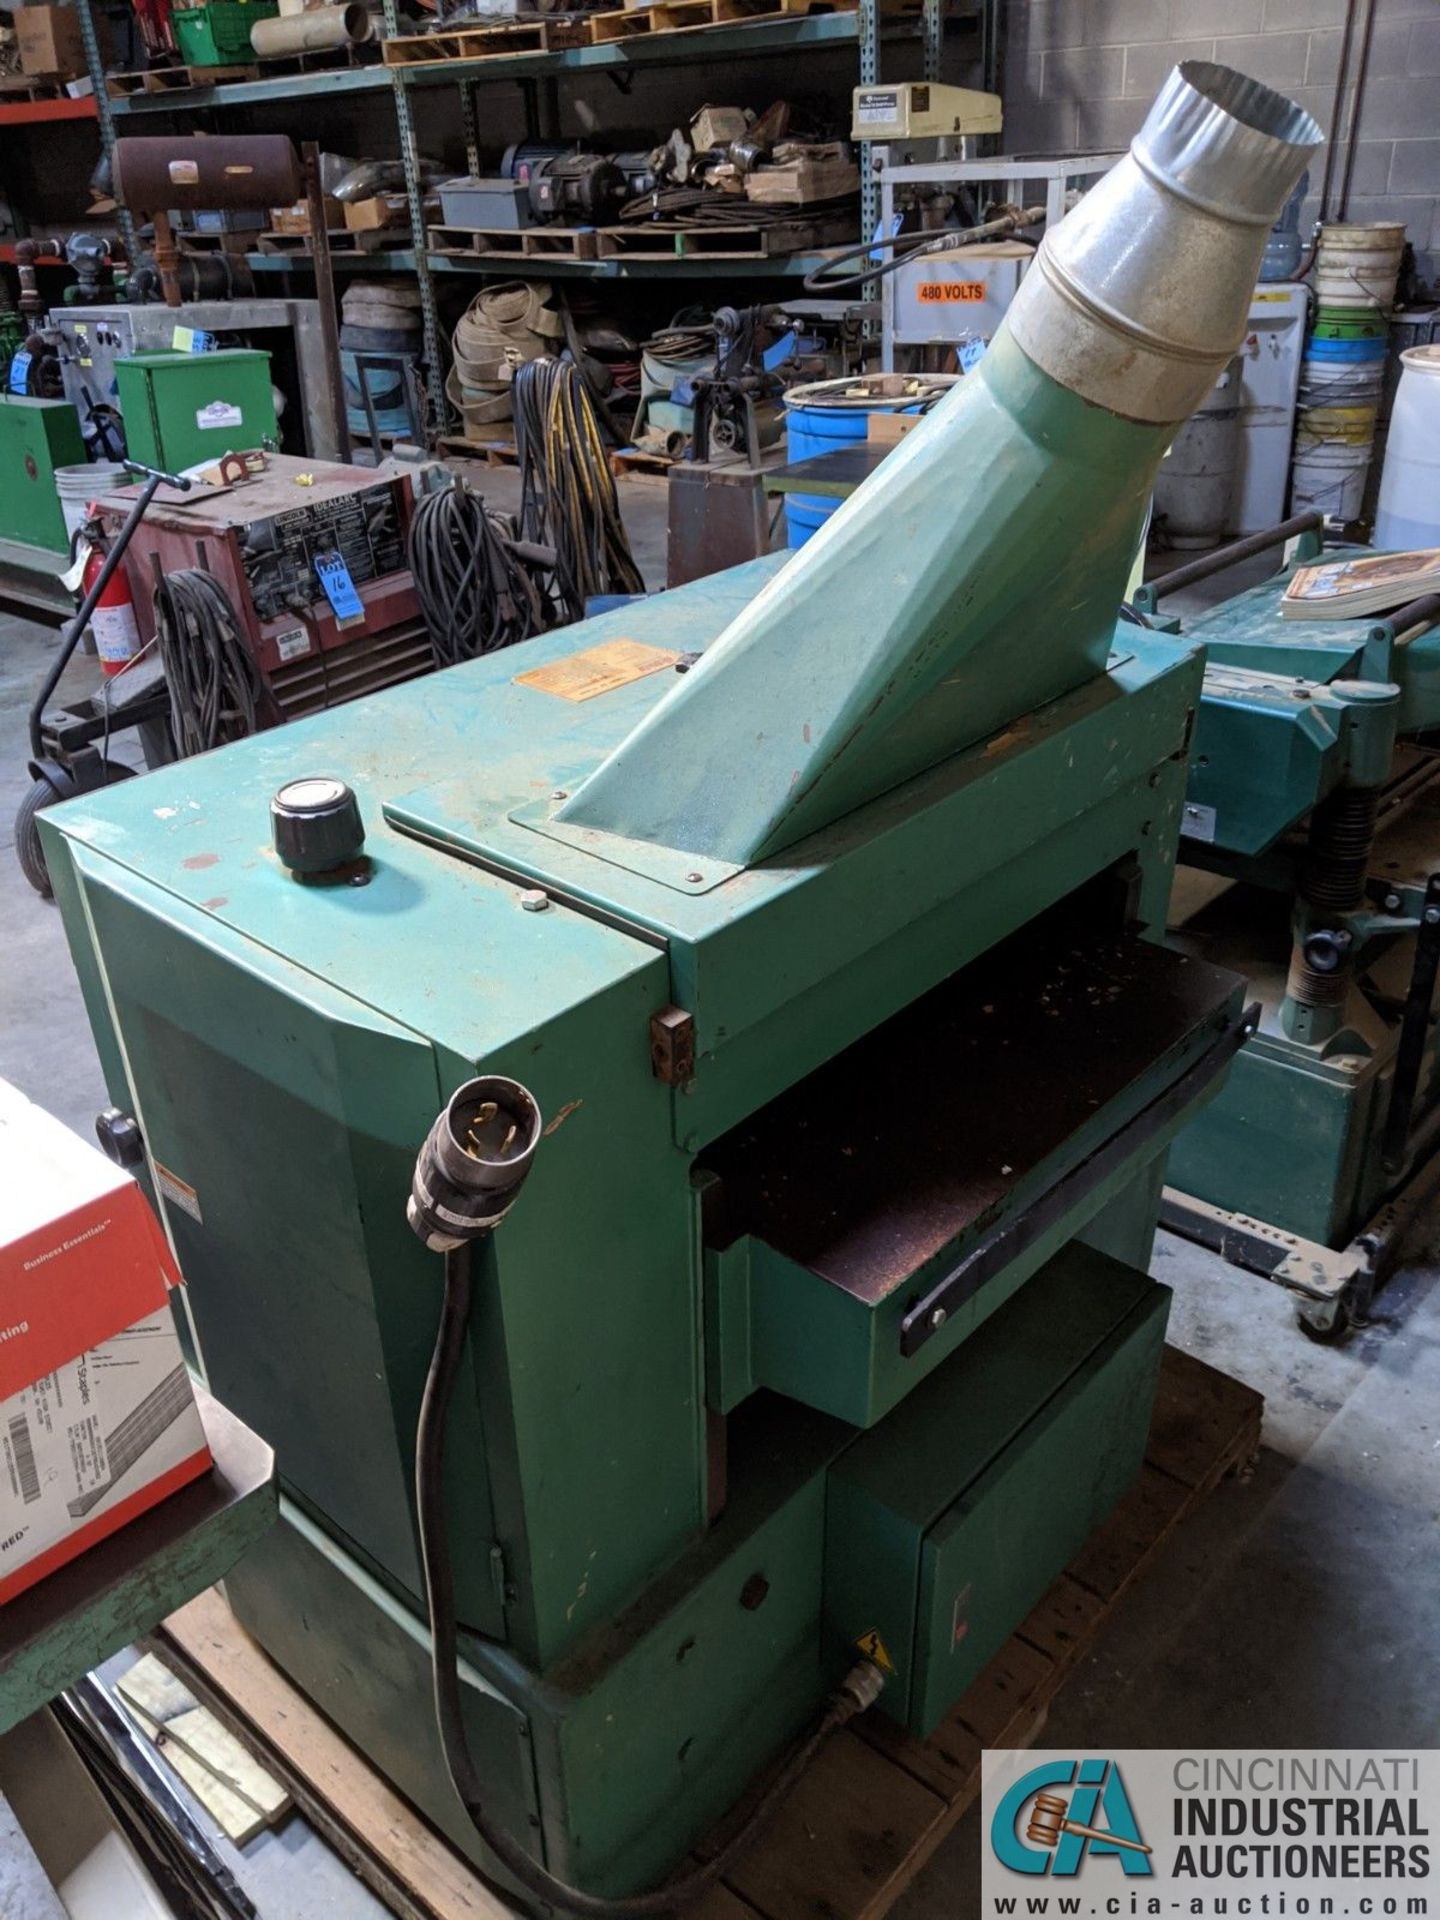 """24"""" GRIZZLY MODEL 24"""" EXTREME DUTY PLANER; SPIRAL CUTTER HEAD, 10-HP CUTTER HEAD, 20 - 40 FPM ( - Image 3 of 7"""